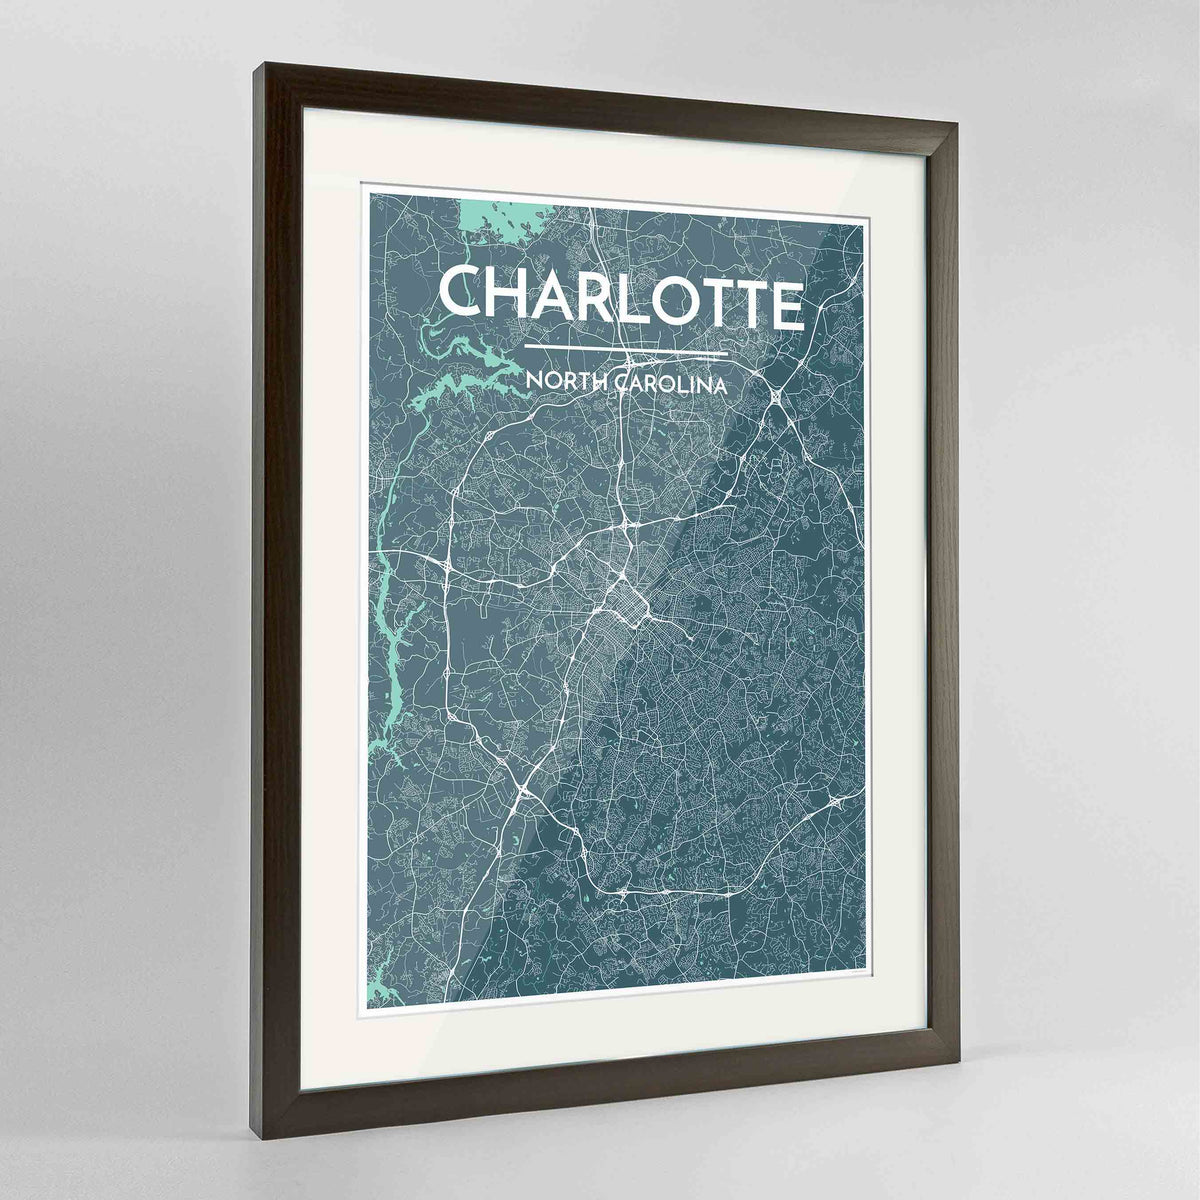 "Framed Charlotte Map Art Print 24x36"" Contemporary Walnut frame Point Two Design Group"